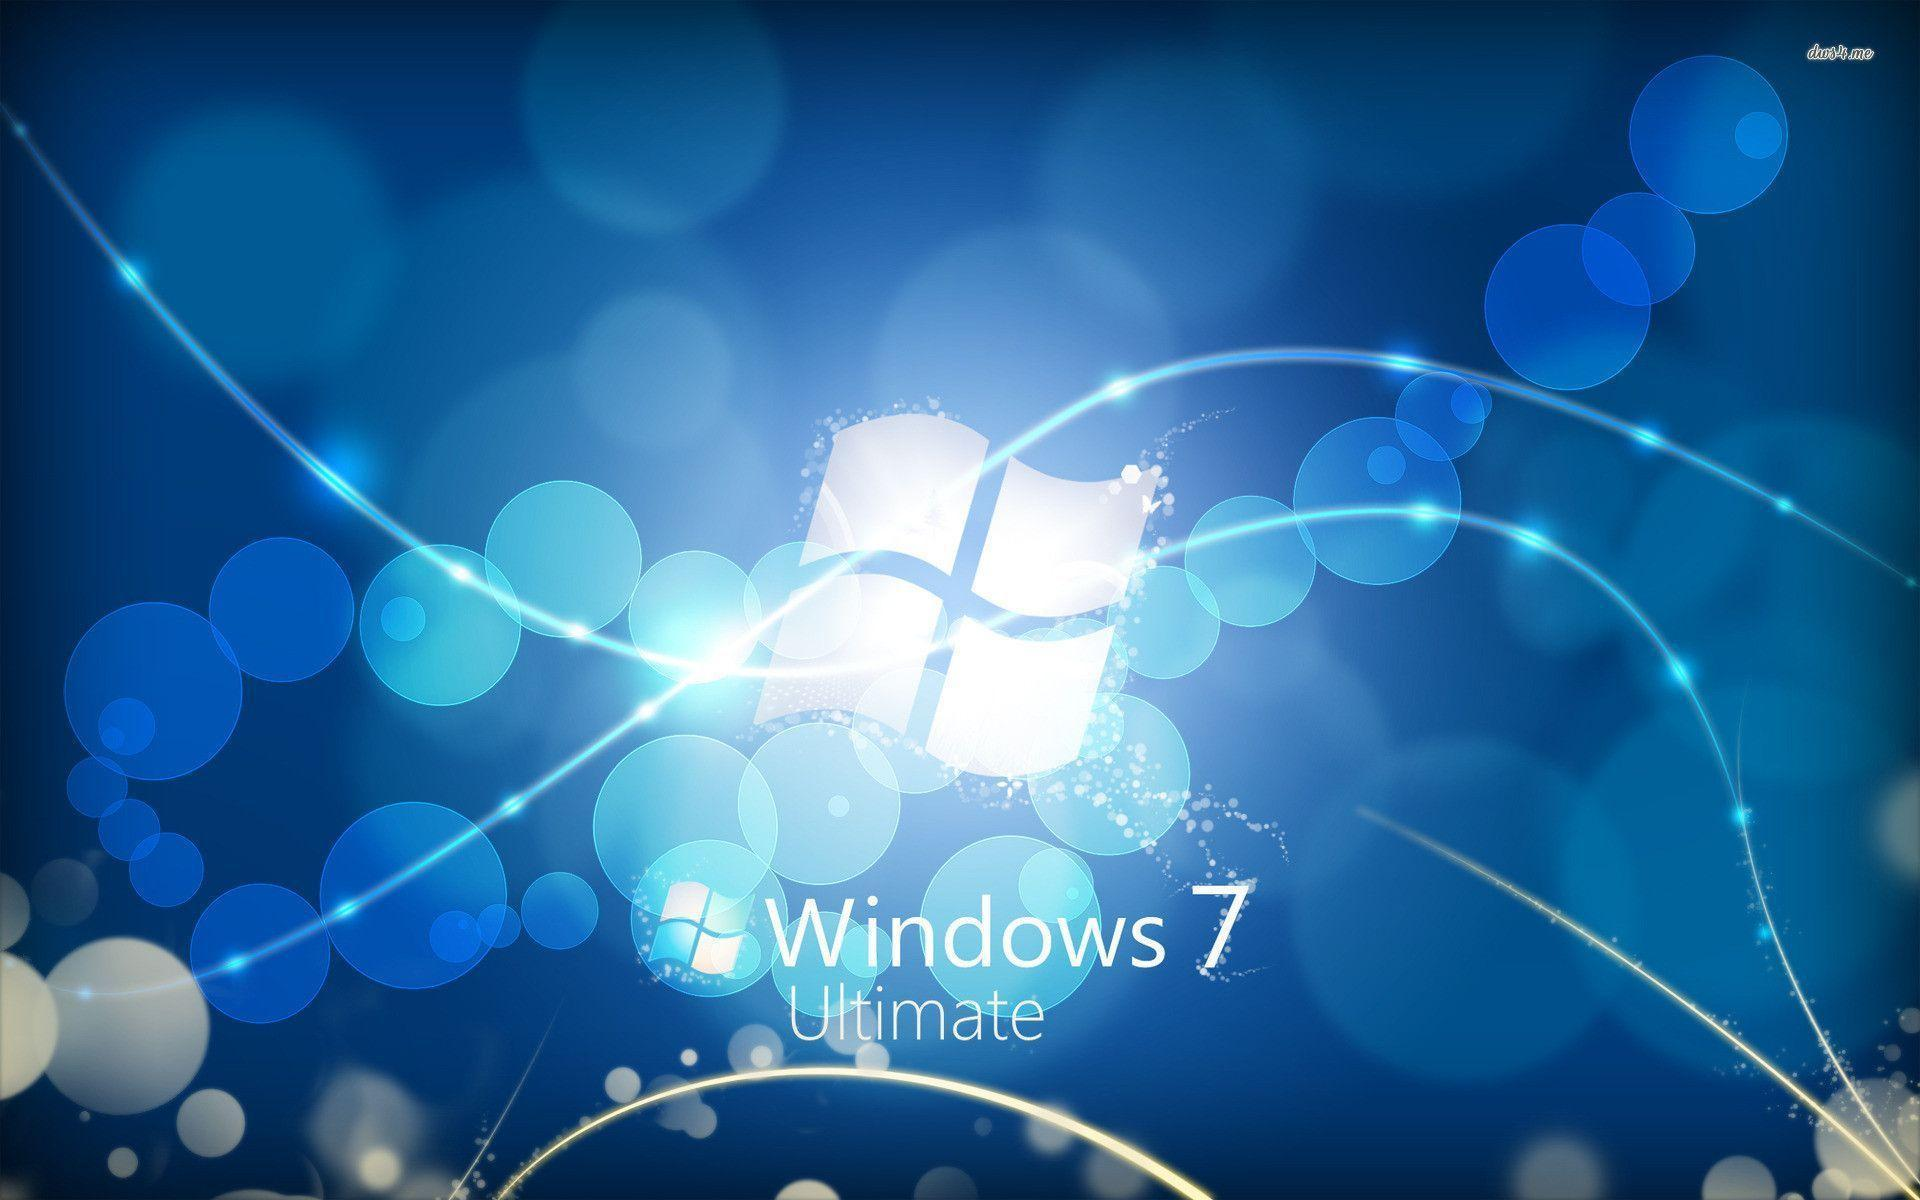 Wallpapers For > Windows 7 Ultimate Wallpaper Hd Download